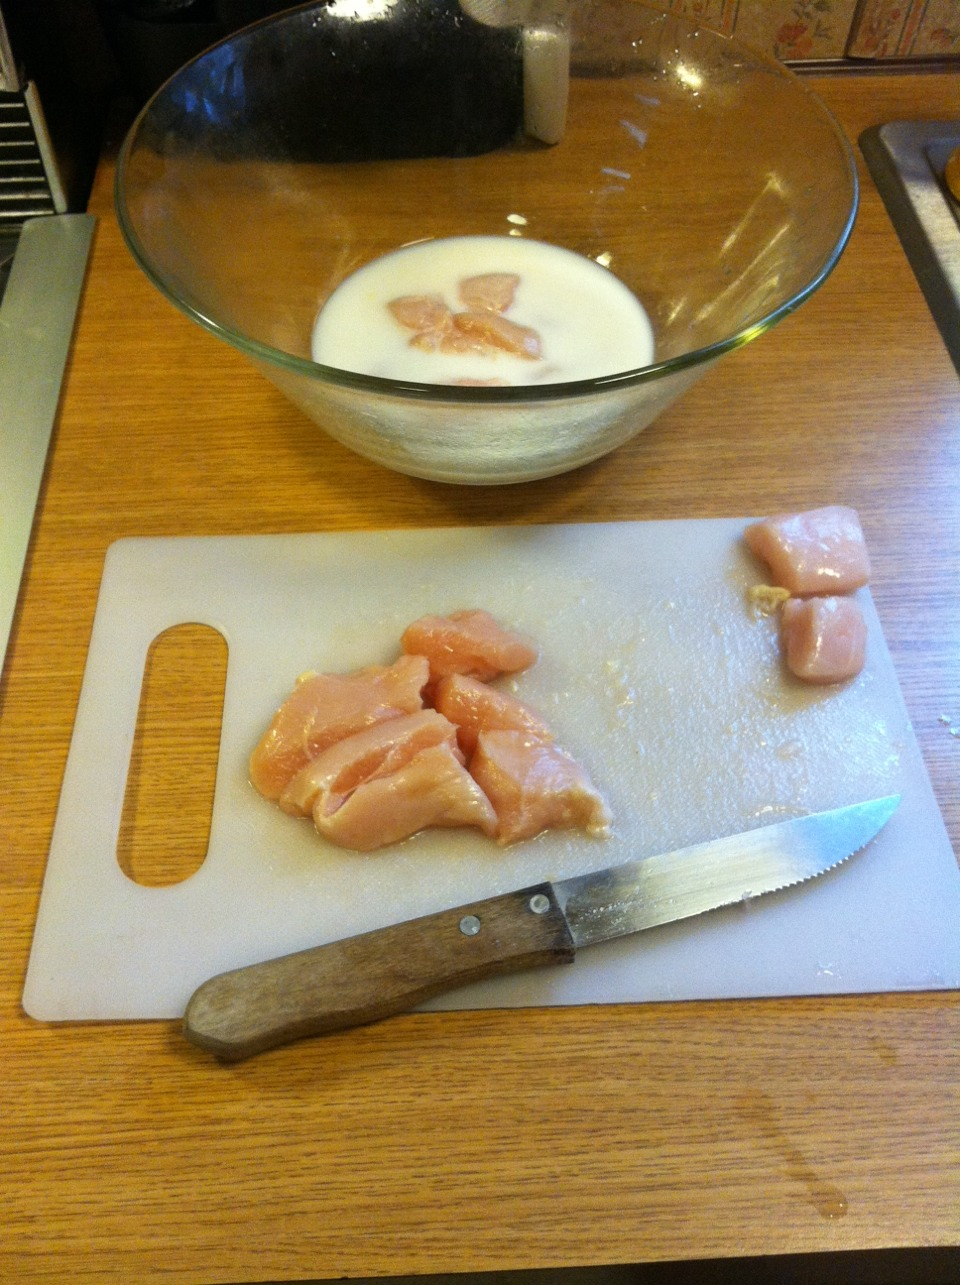 Start by cutting 4 boneless skinless chicken breasts into bite size pieces. Then whisk together 1egg and 1 cup milk in bowl and coat chicken pieces in mixture.